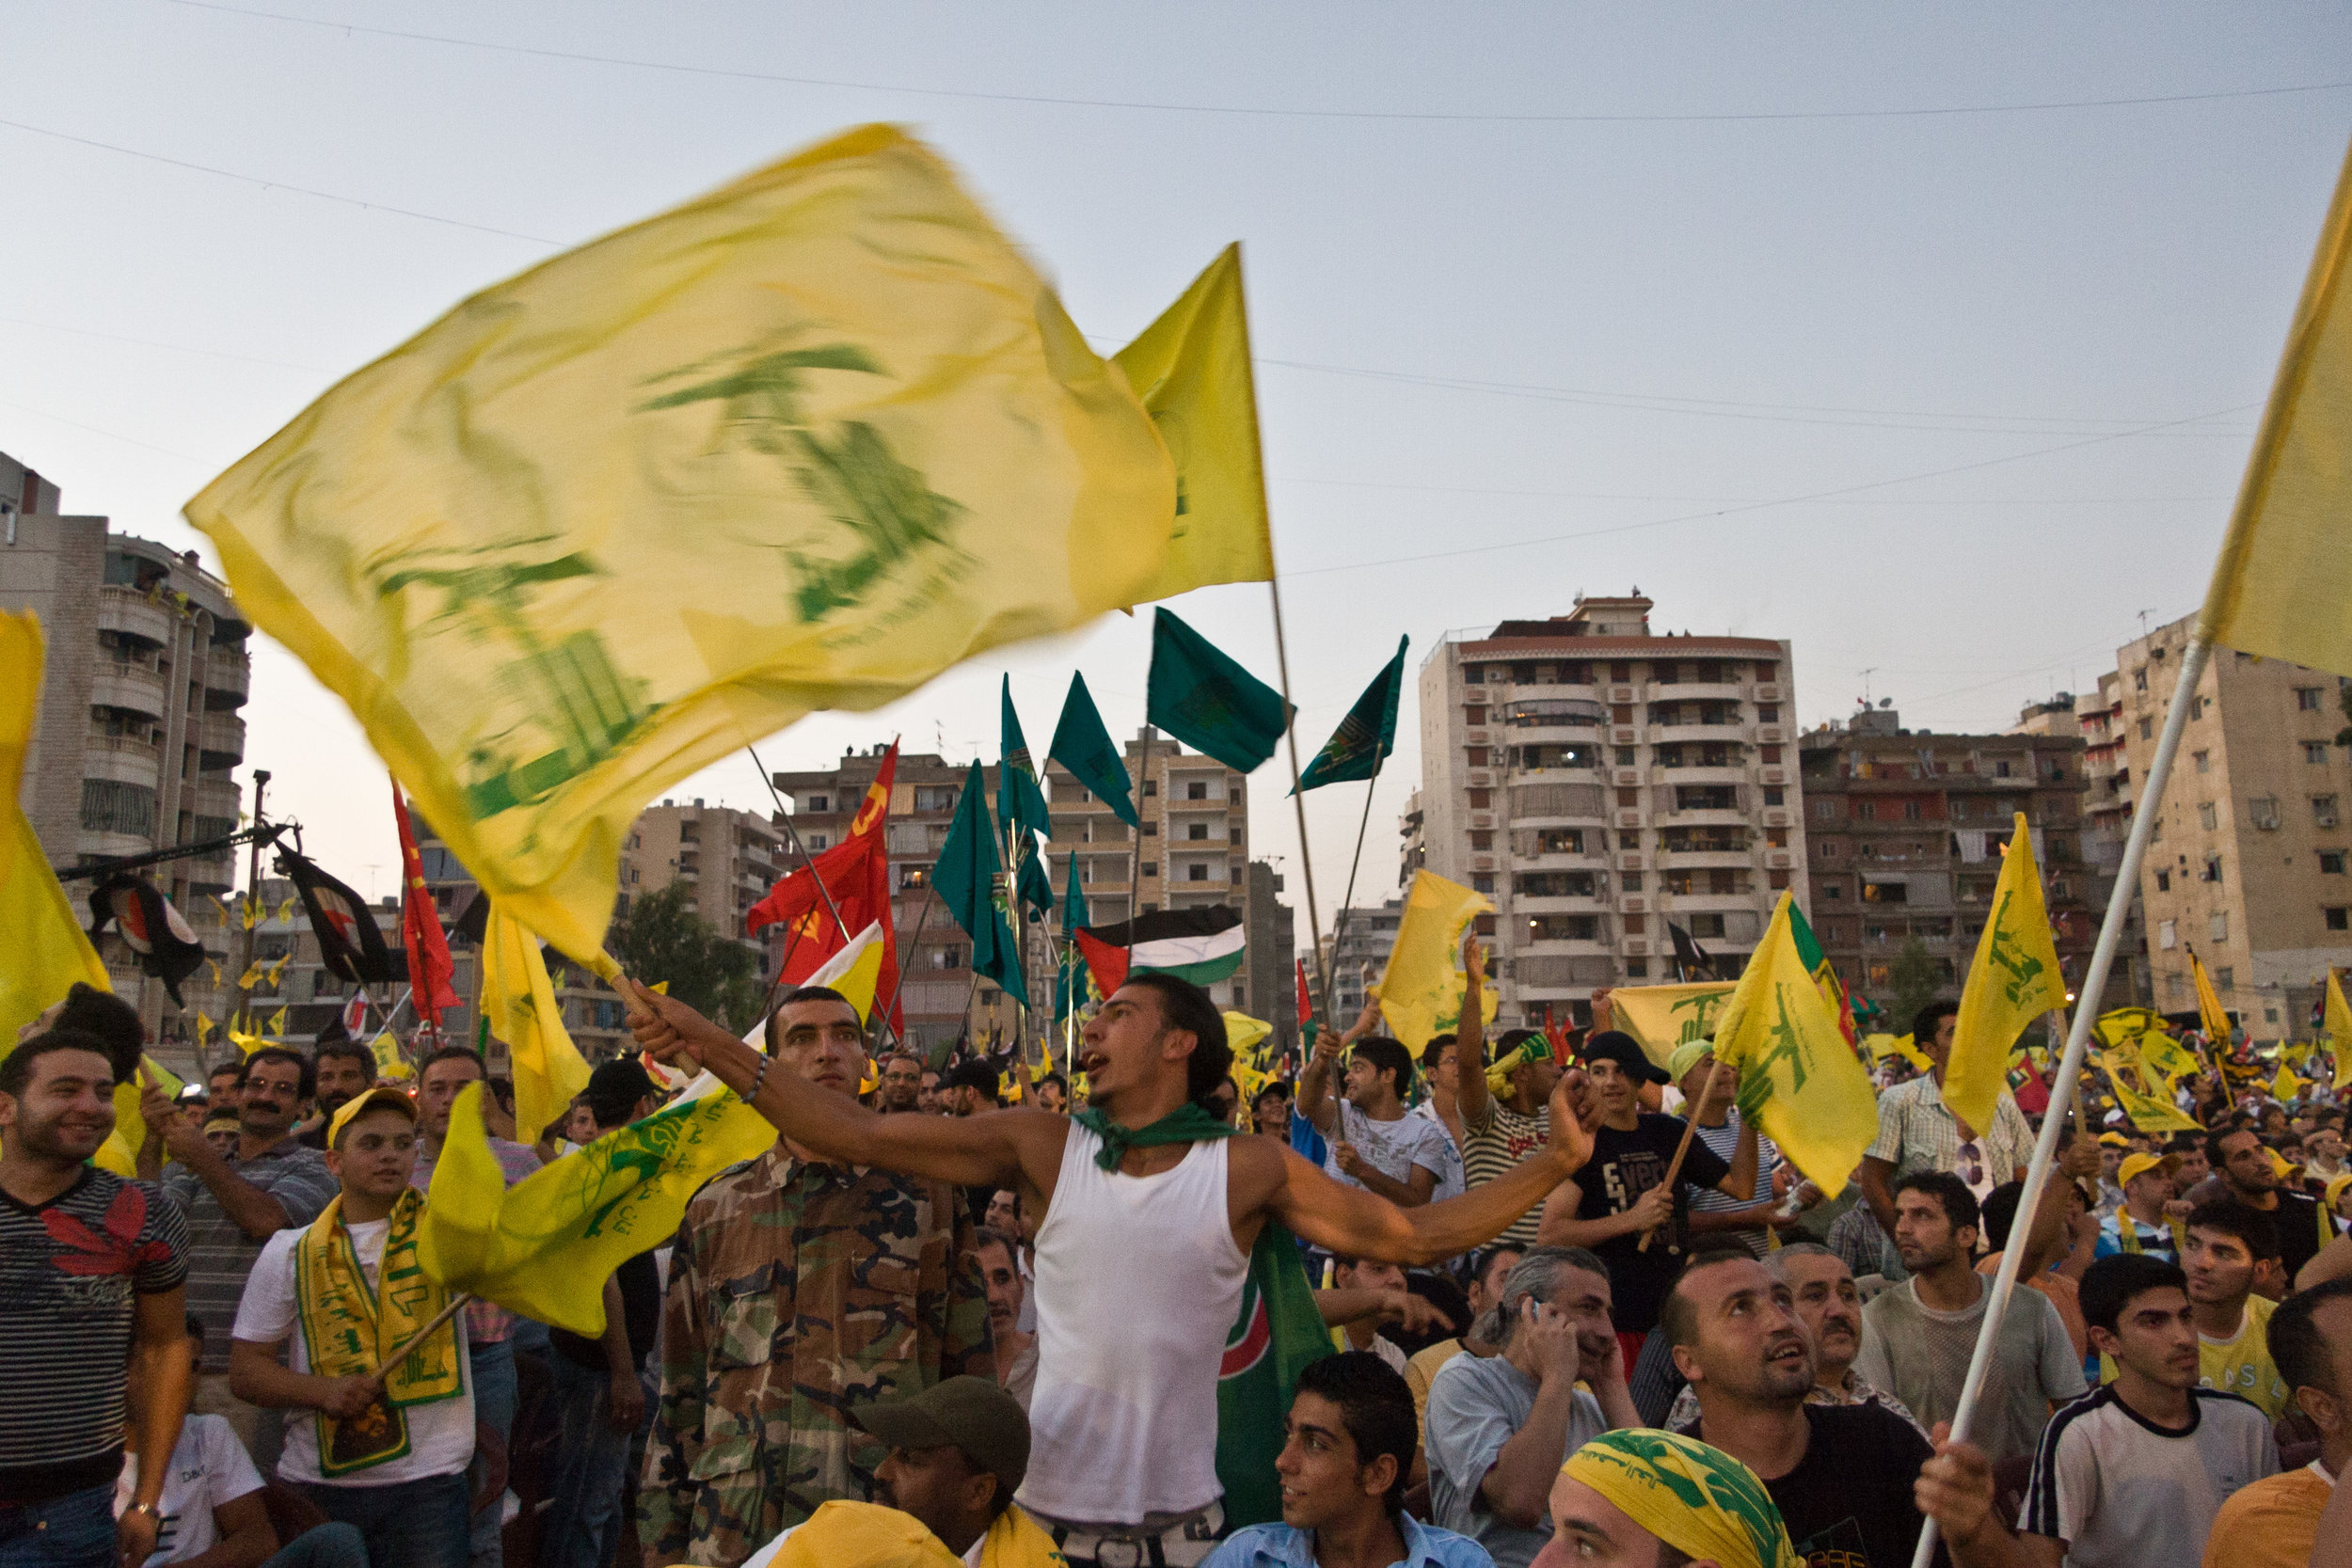 A Hezbollah supporter at a rally for a prisoner exchange between Hezbollah and Israel.